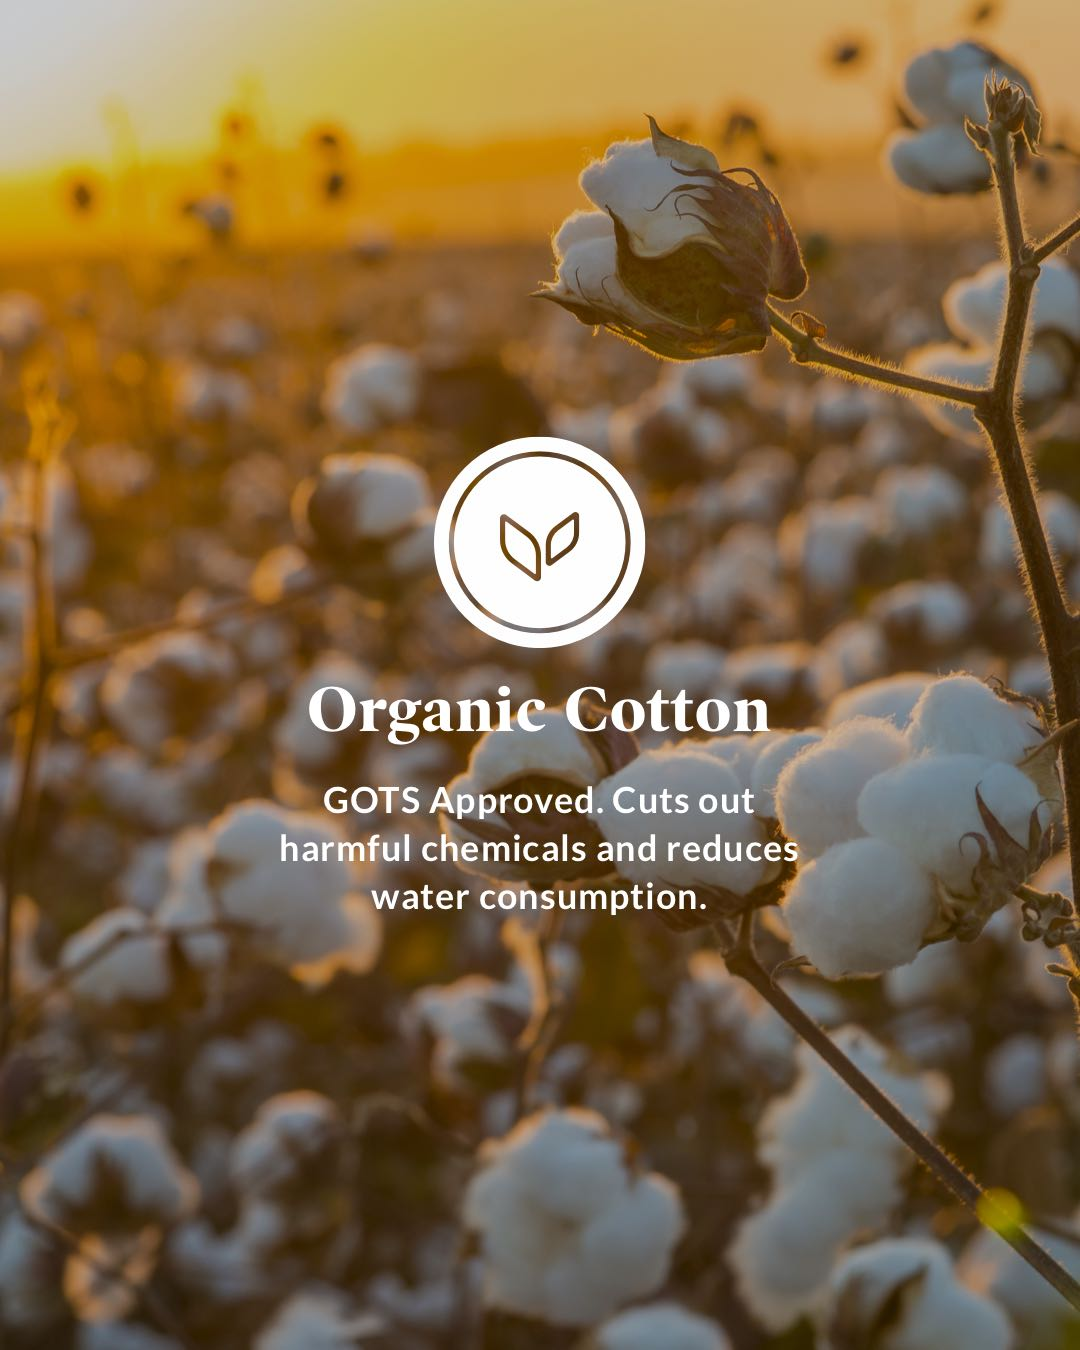 Organic Cotton - GOTS Approved. Cuts out harmful chemicals and reduces water consumption.